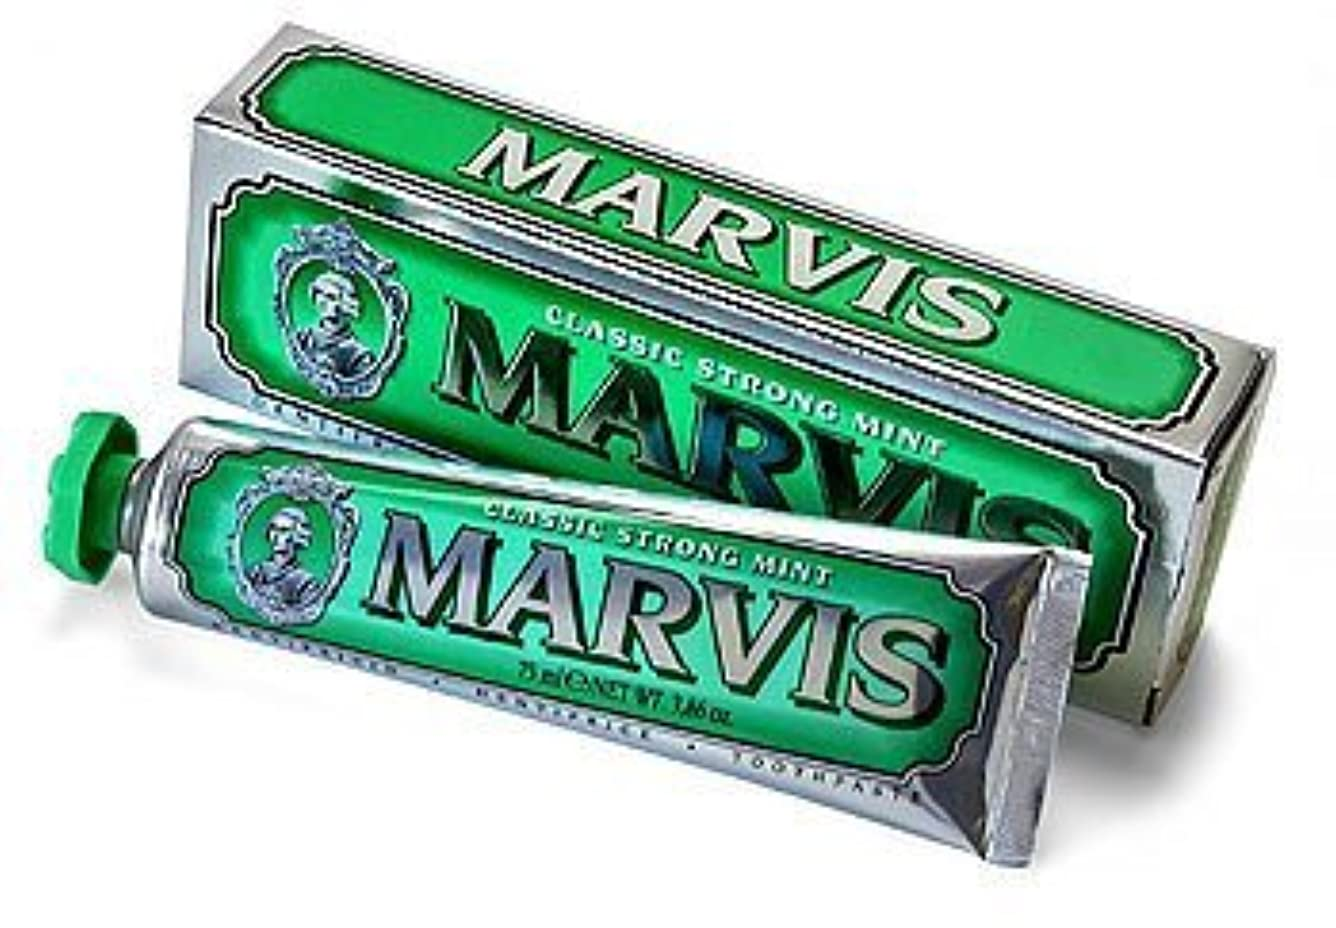 シリンダービルマ性別Marvis Classic Strong Mint Toothpaste - 75ml by Marvis [並行輸入品]